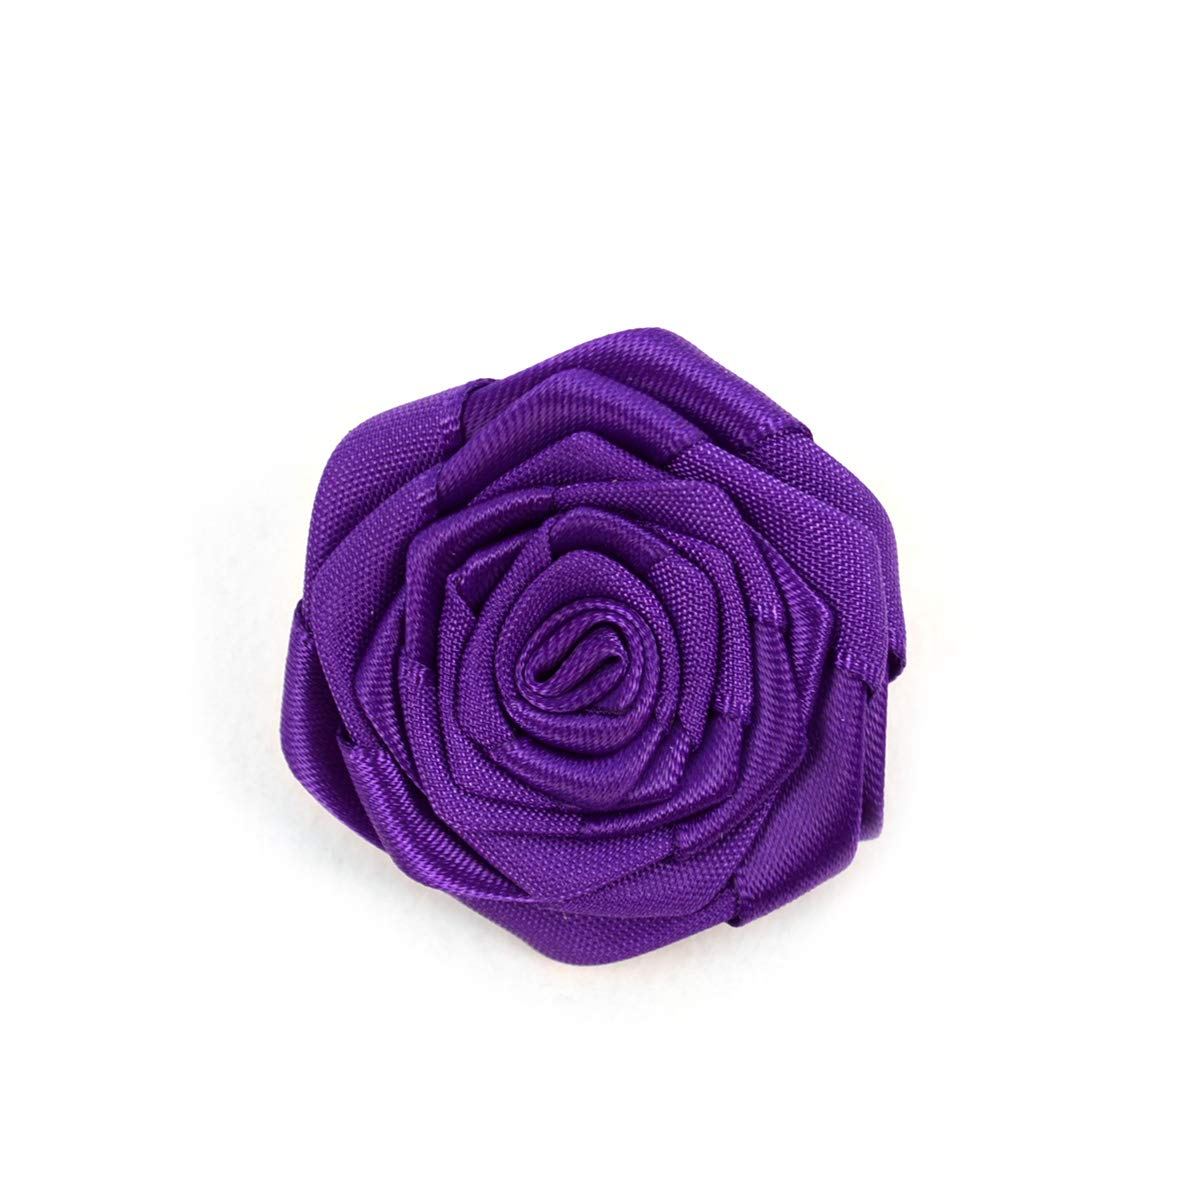 Dozens of Colors BG Boutineers for Men Solid Lapel Pin Flower Fancy Pin for Suit Tuxedo Party Prom Graduation Wedding